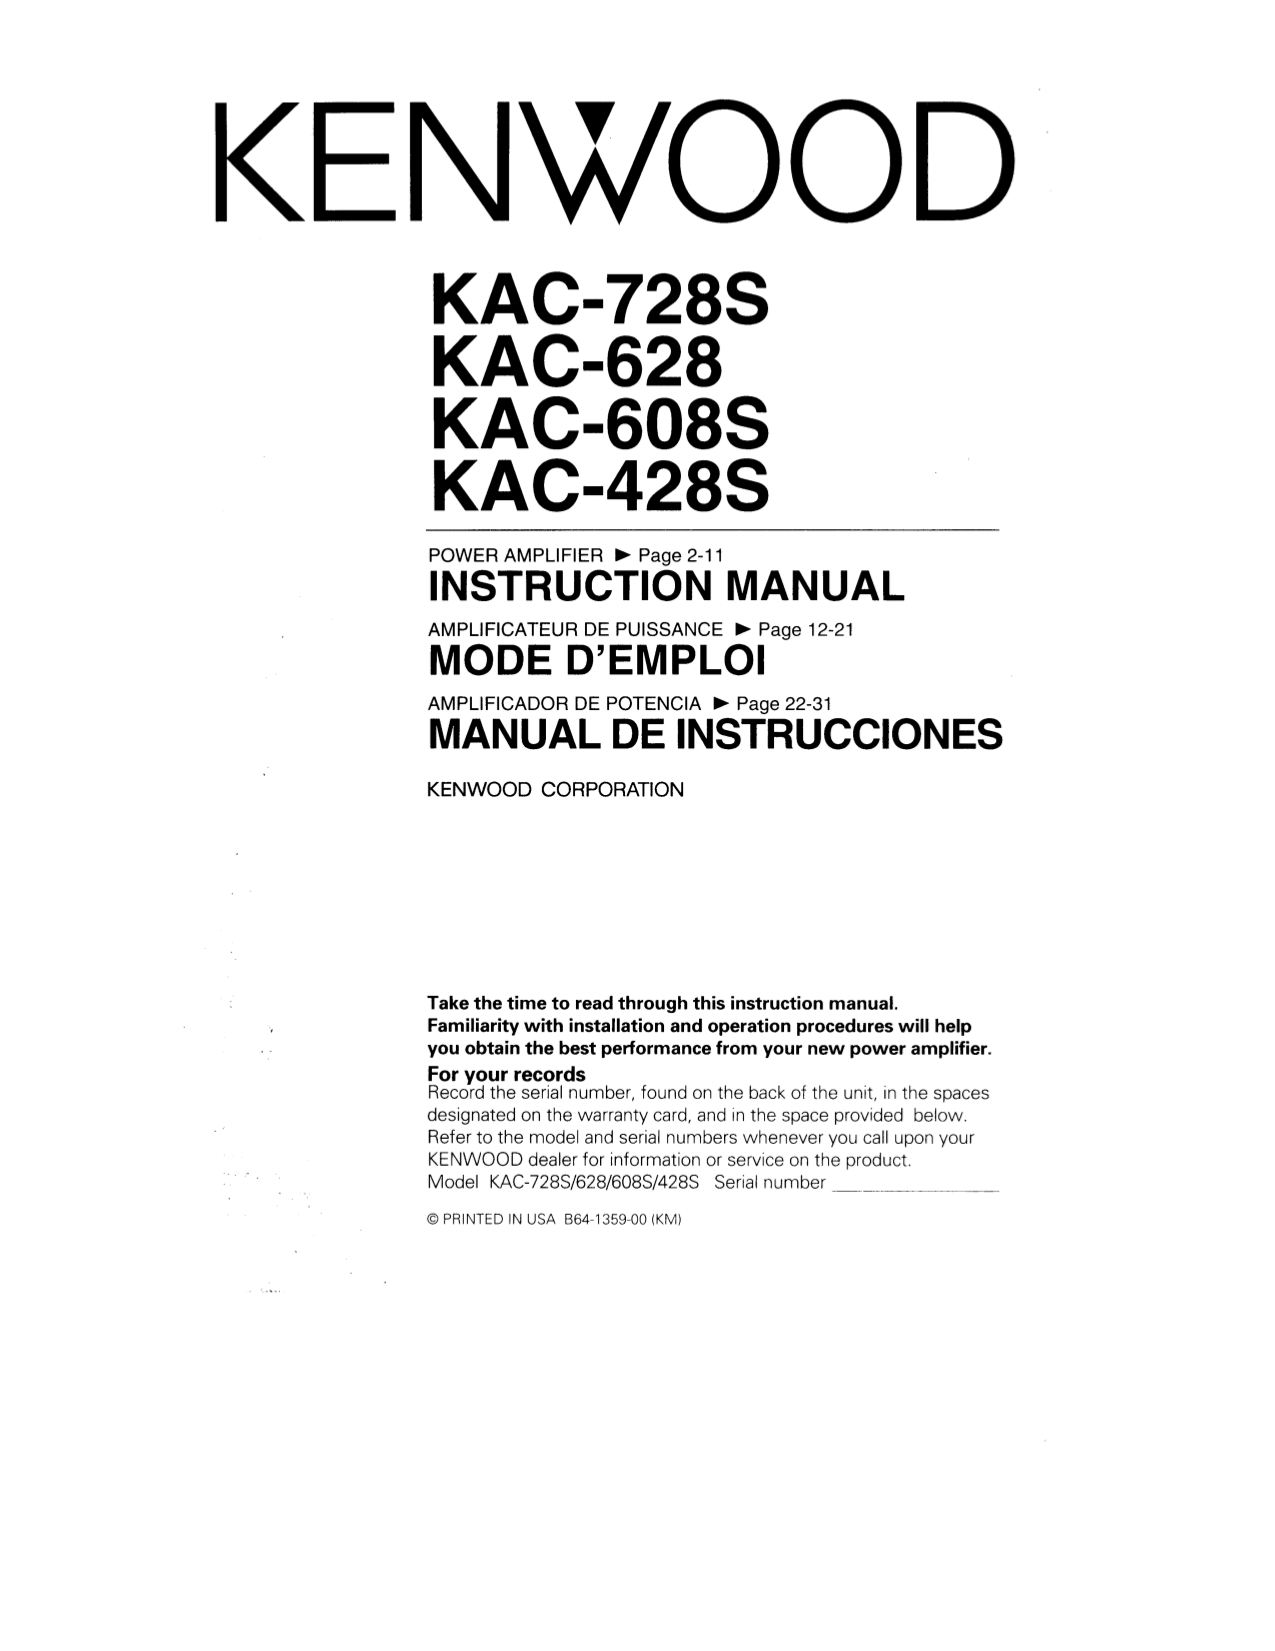 113kac728s.pdf 0 download free pdf for kenwood kac 728s car amplifier manual kenwood kac 7285 wiring diagram at gsmx.co